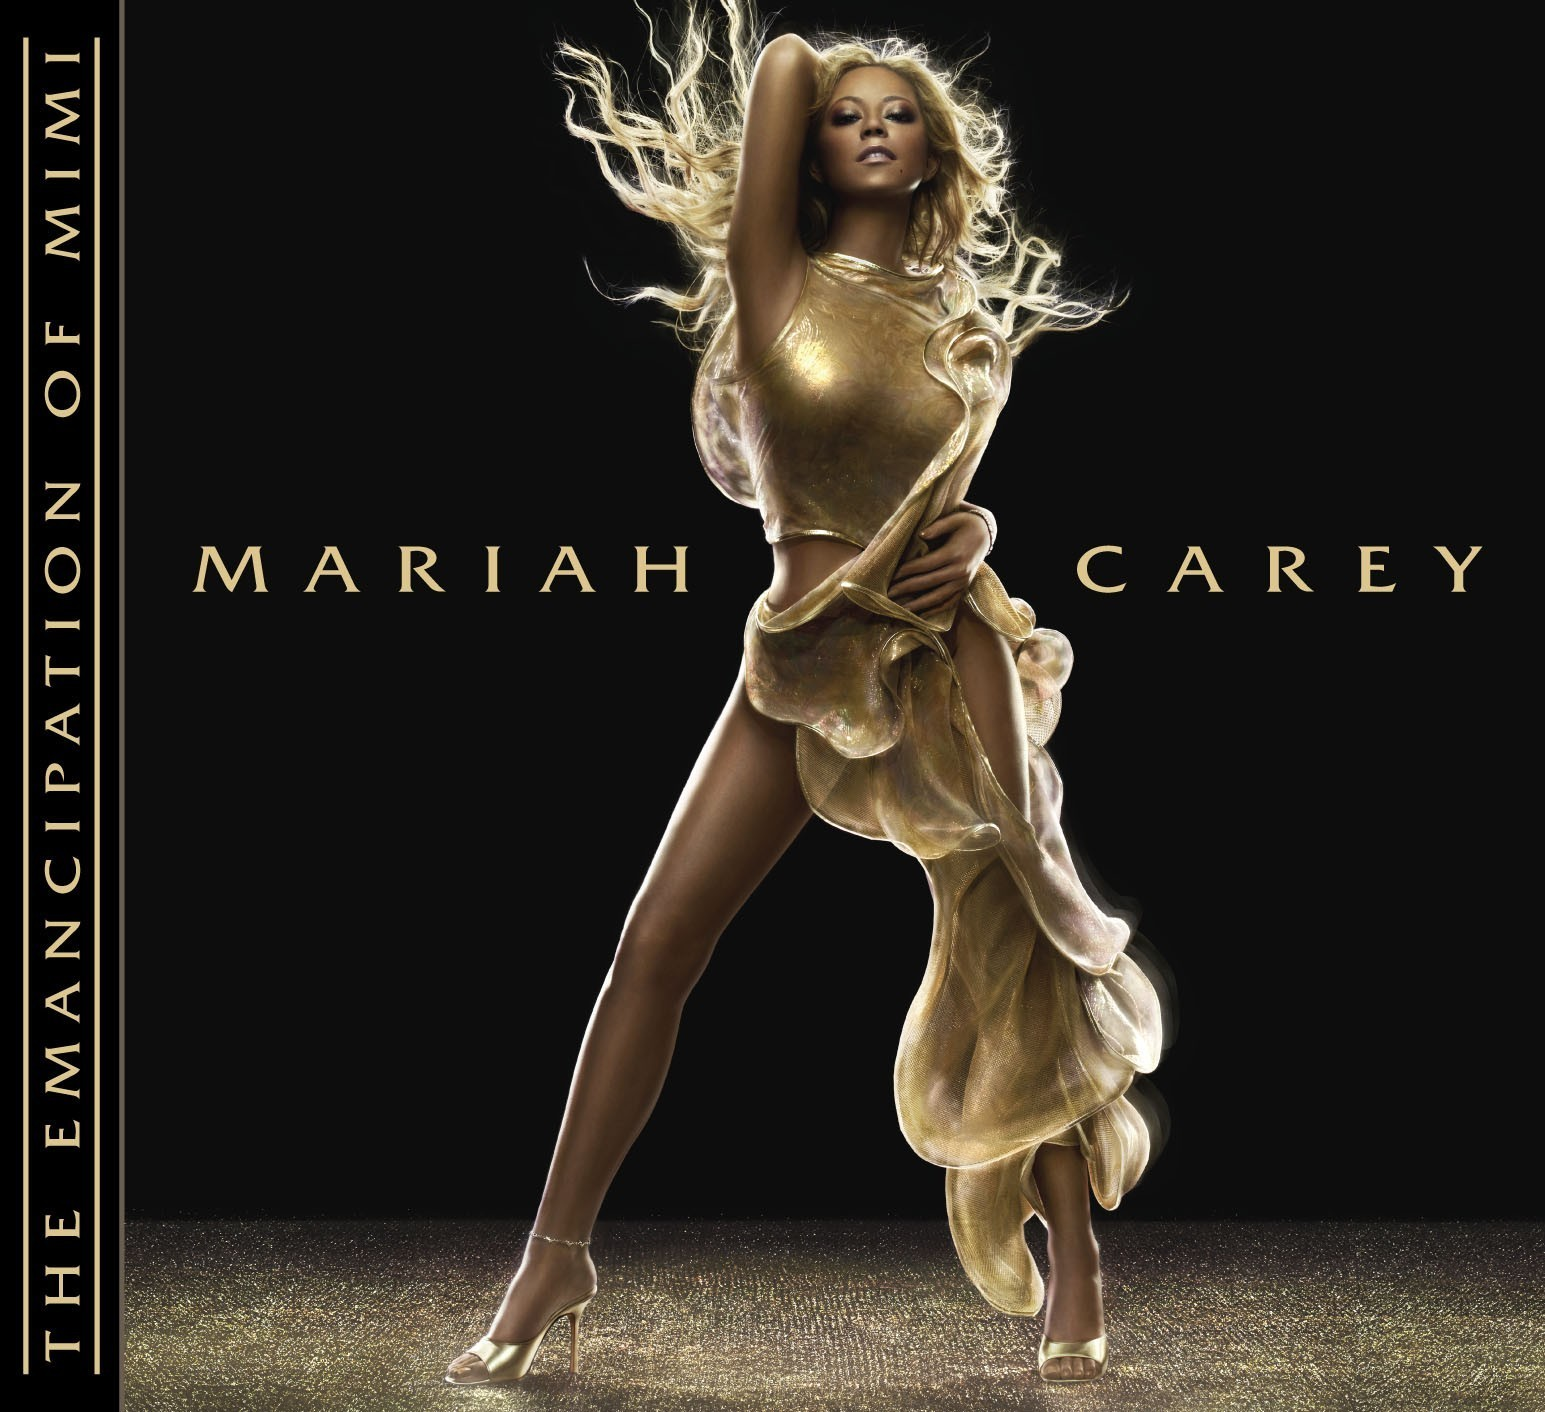 Mariah Carey - Music Photo (14583925) - Fanpop Mariah Carey Songs